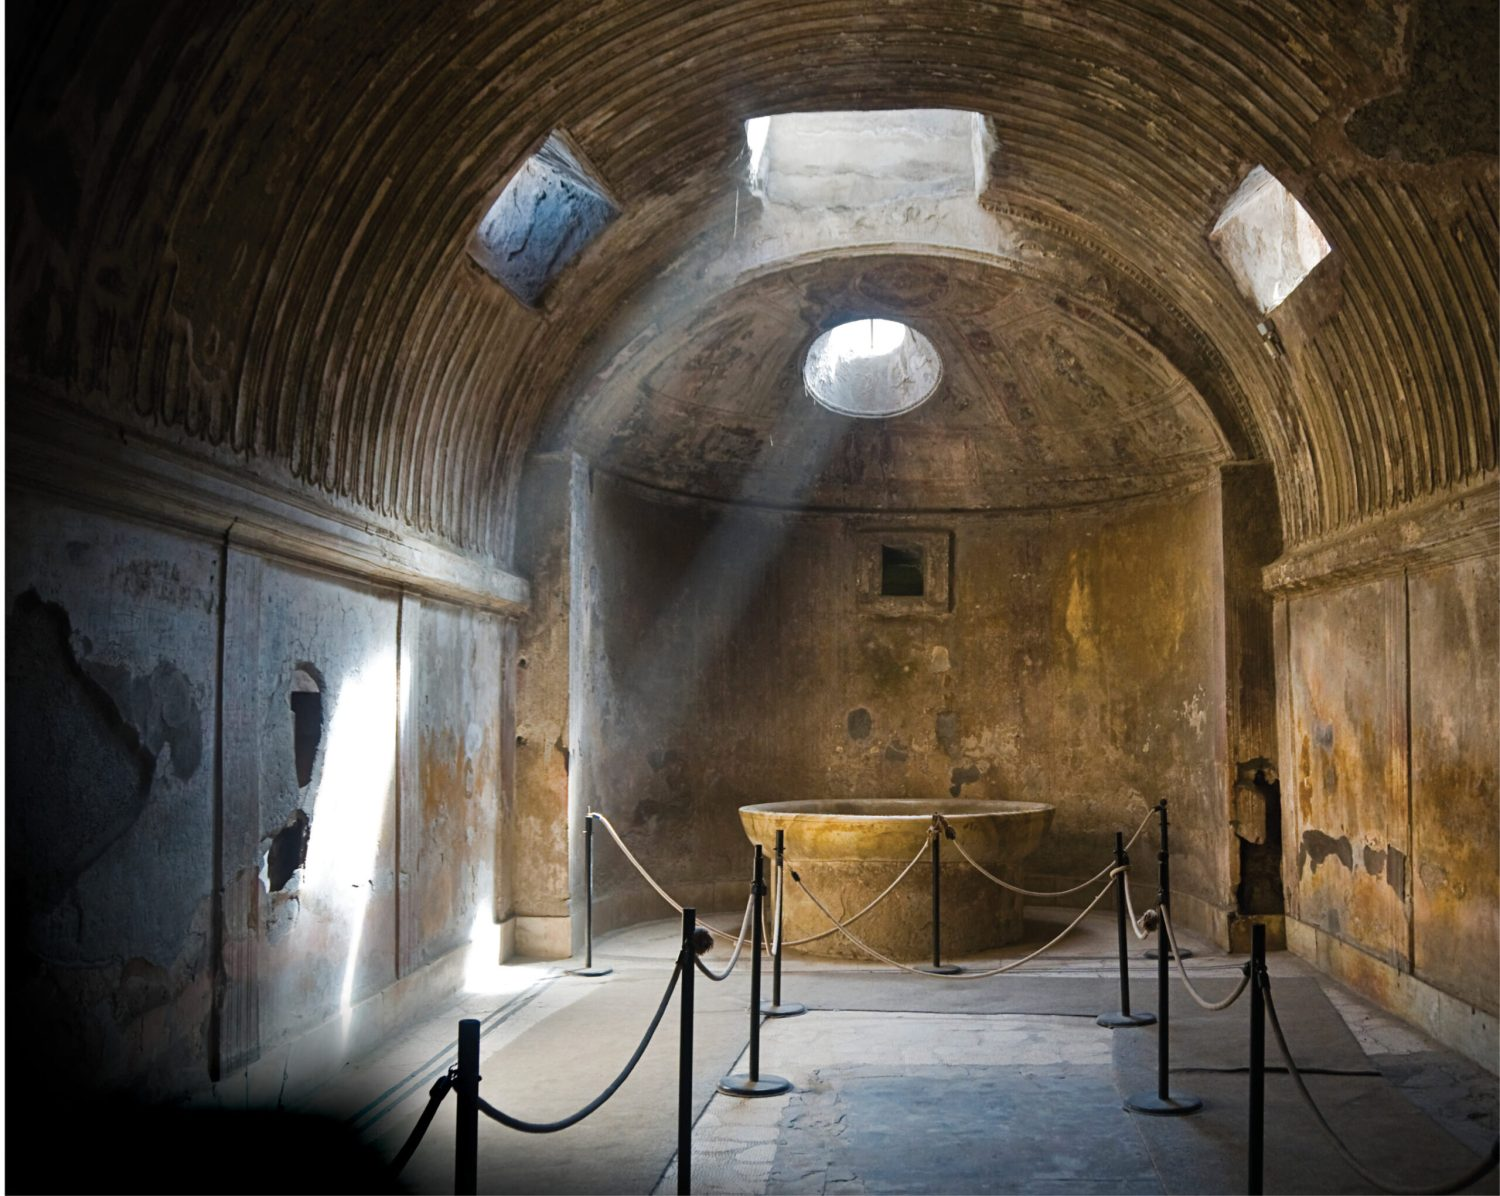 above Inside the Forum Baths at Pompeii. The ancient city is one of the most extraordinary archaeological sites in the world, but how is its director selected? Richard Hodges lets in some light on the process.